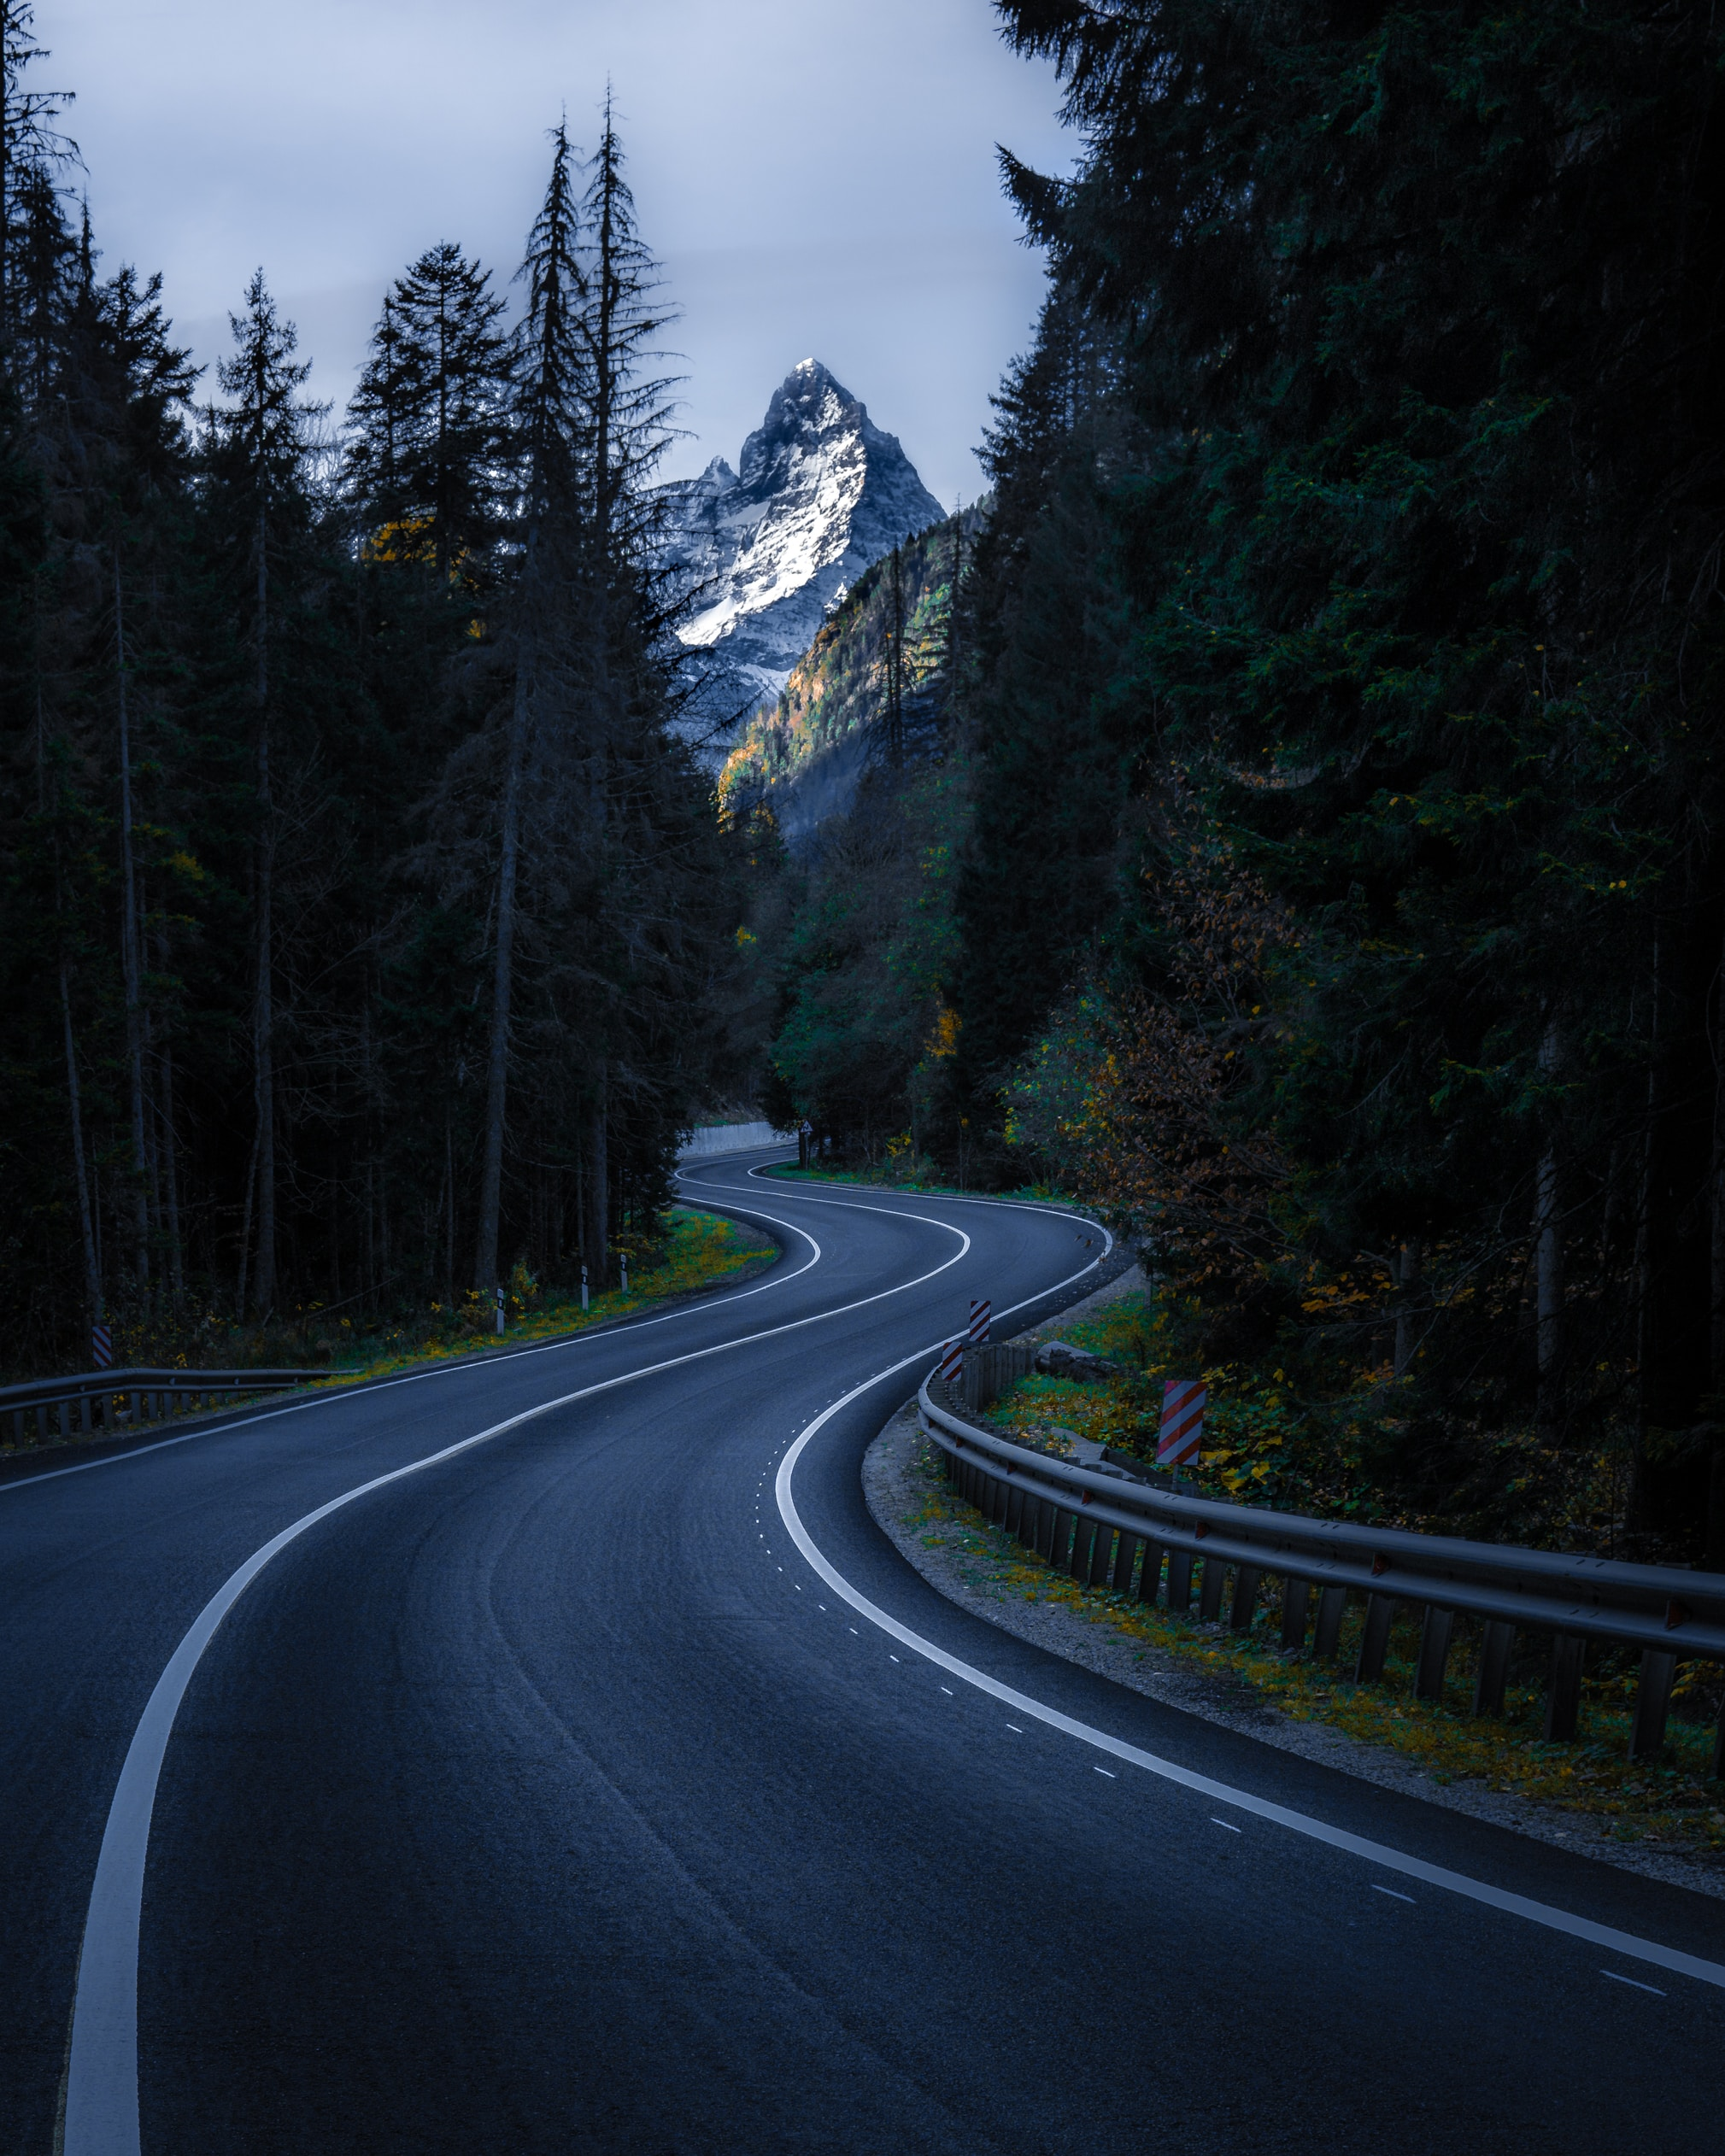 87775 download wallpaper Nature, Trees, Mountain, Vertex, Top, Road, Winding, Sinuous screensavers and pictures for free